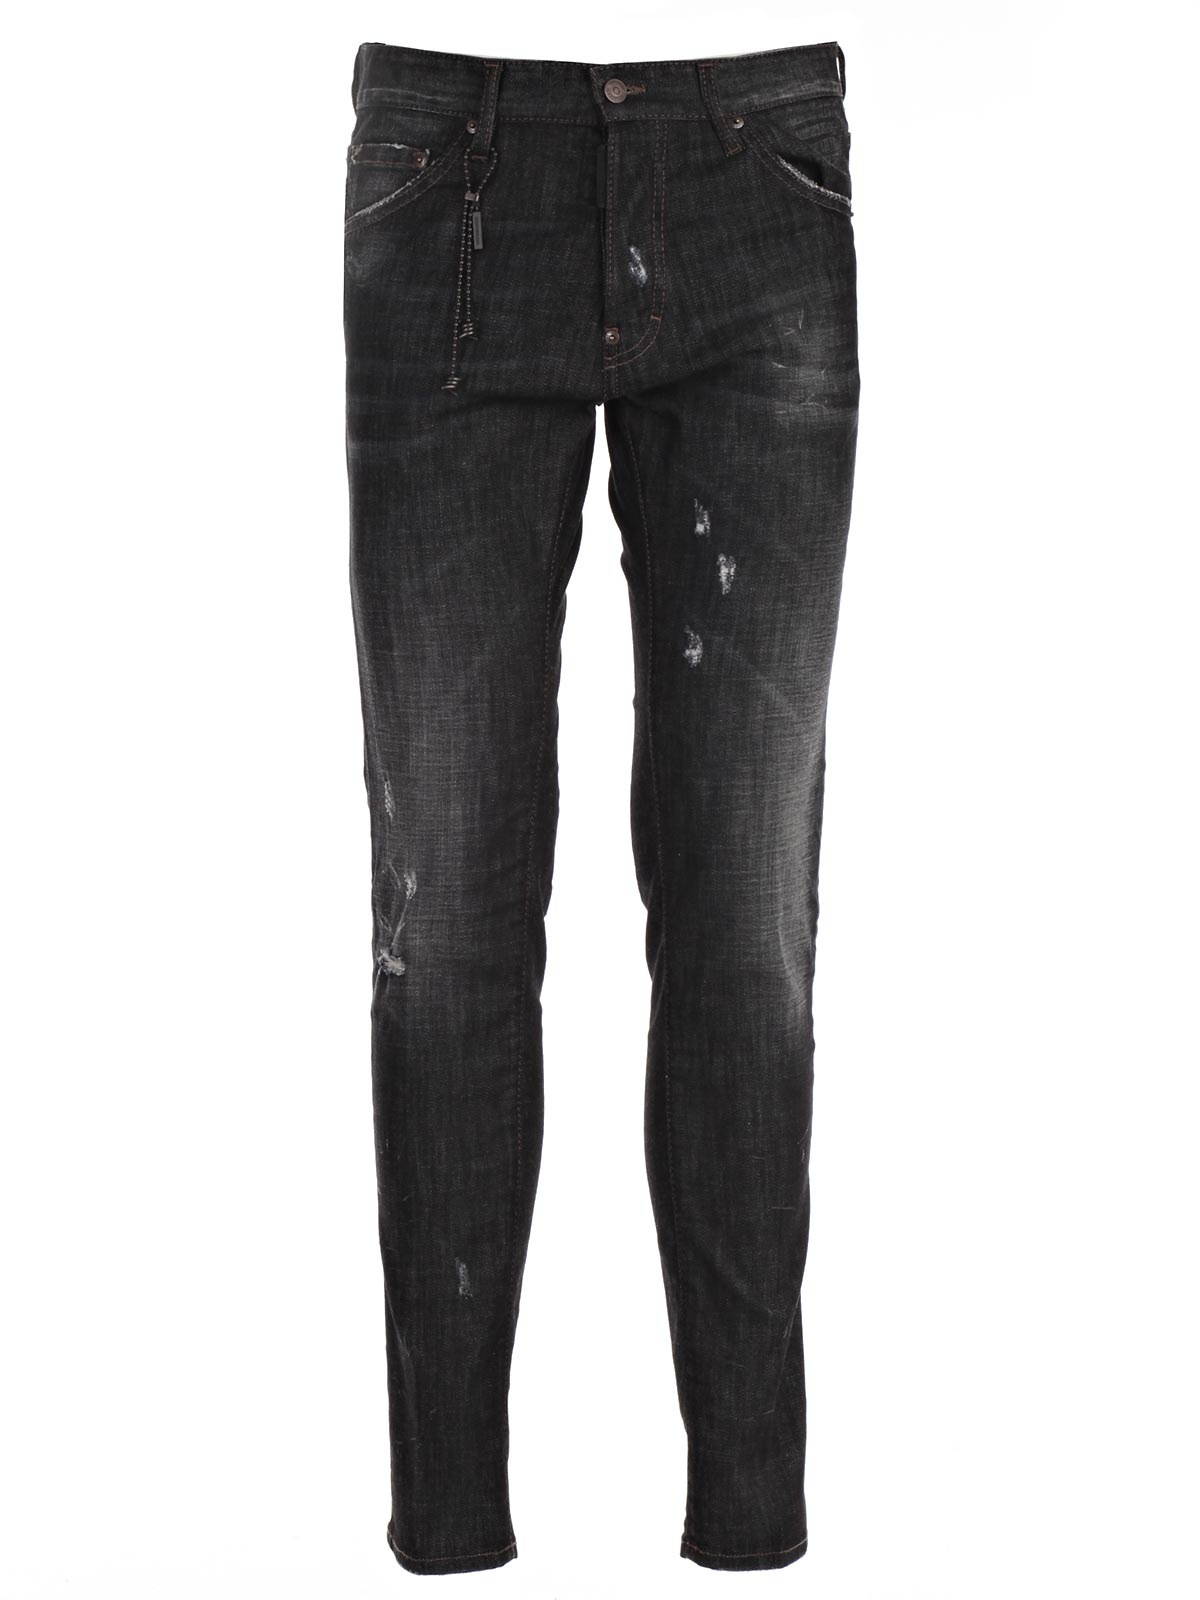 Picture of DSQUARED2 JEANS JEANS COOL GUY